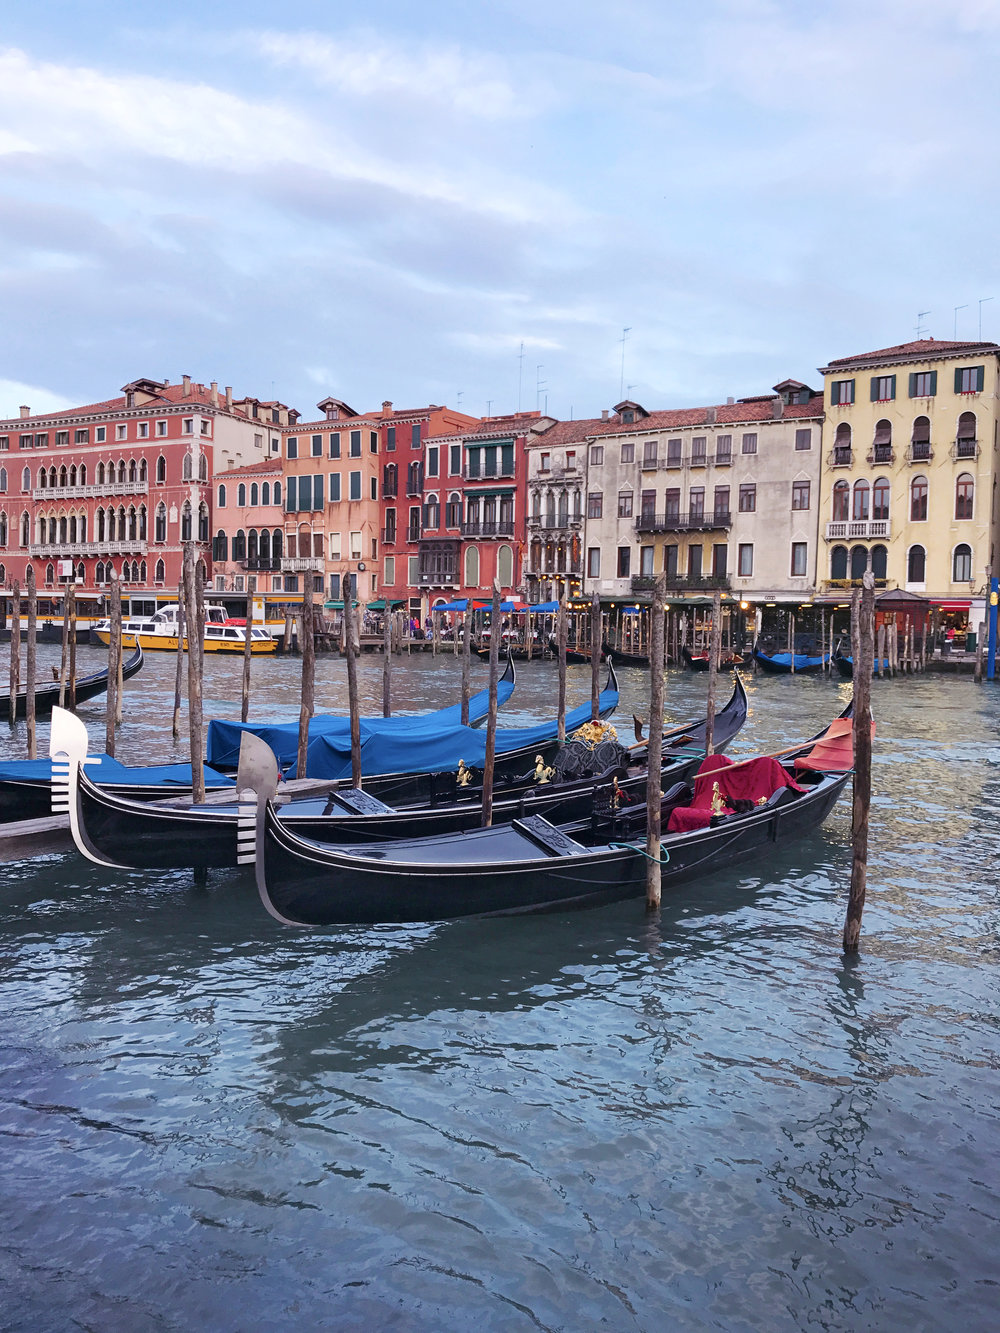 Gondolas along the Grand Canal, Venezia